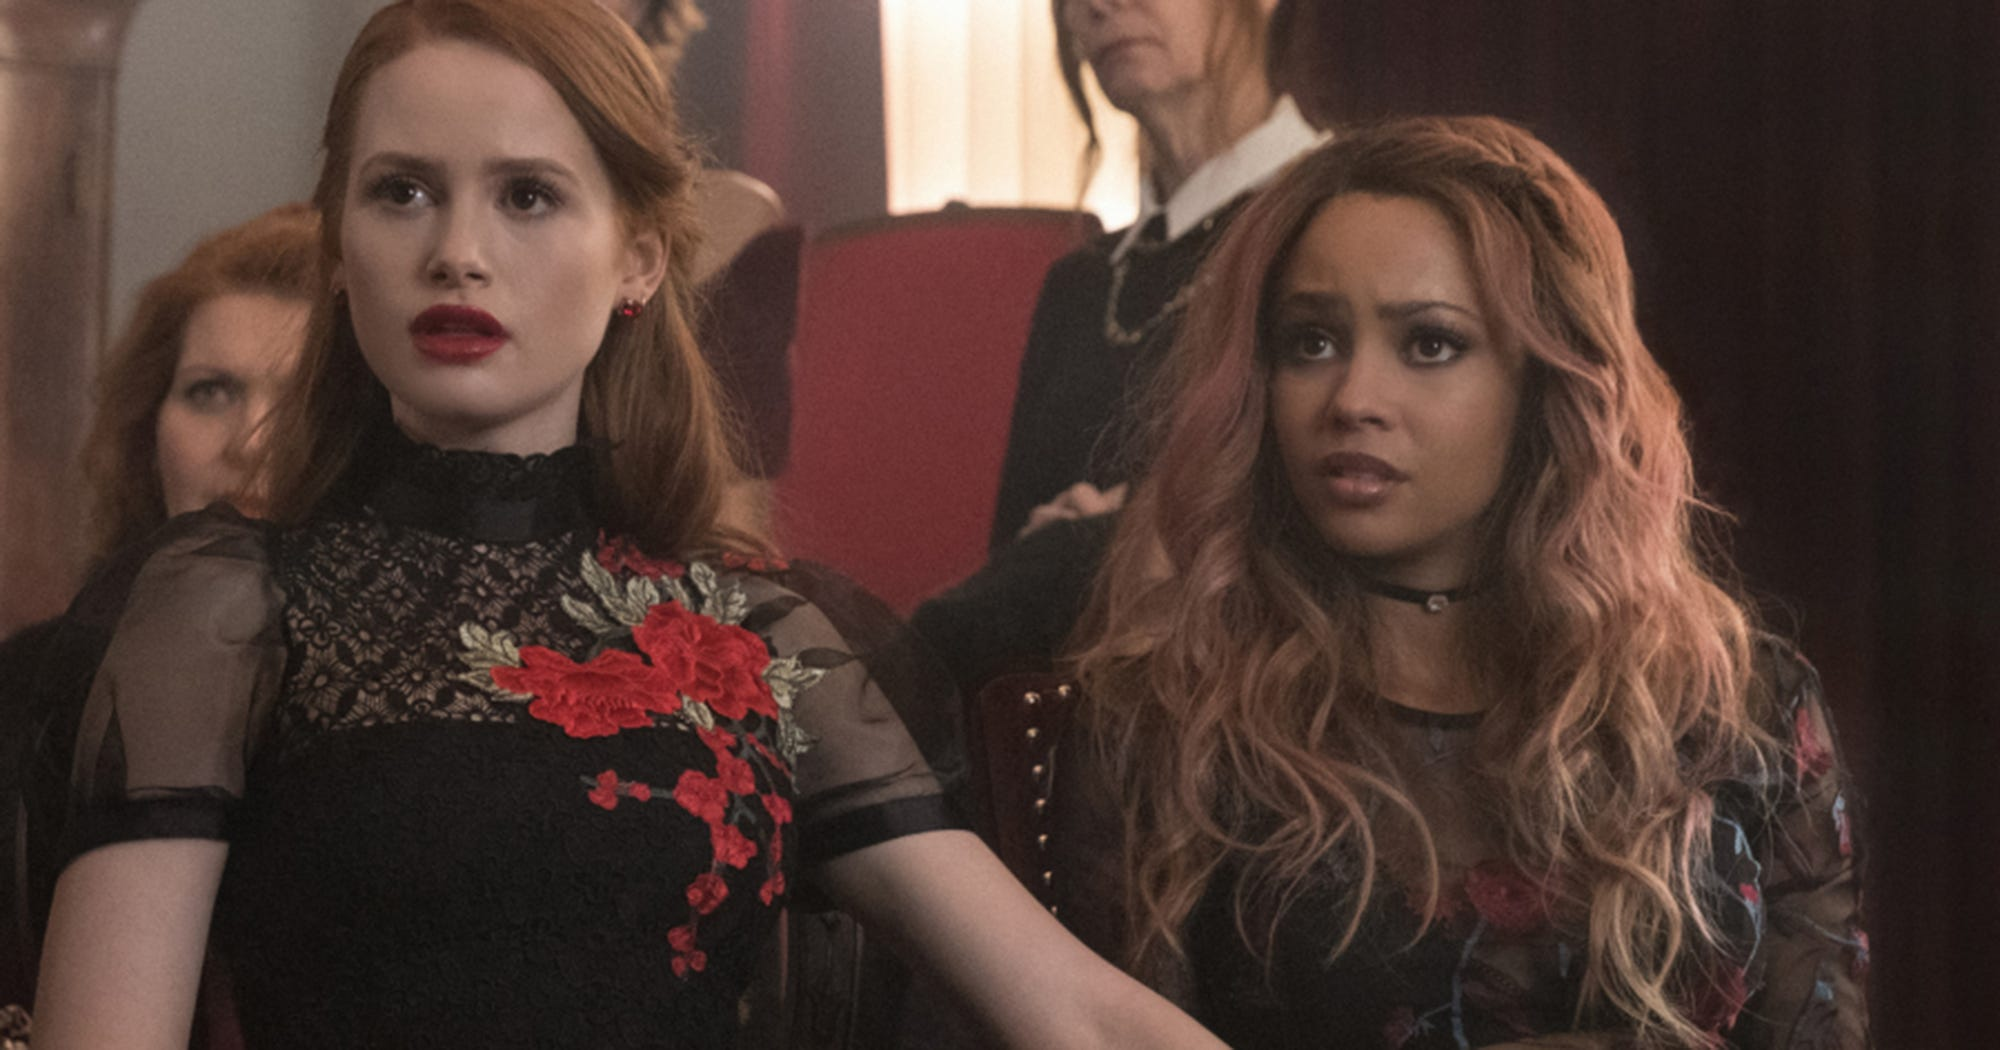 Choni Episode Gives Riverdale Its Best Sexiest Kiss